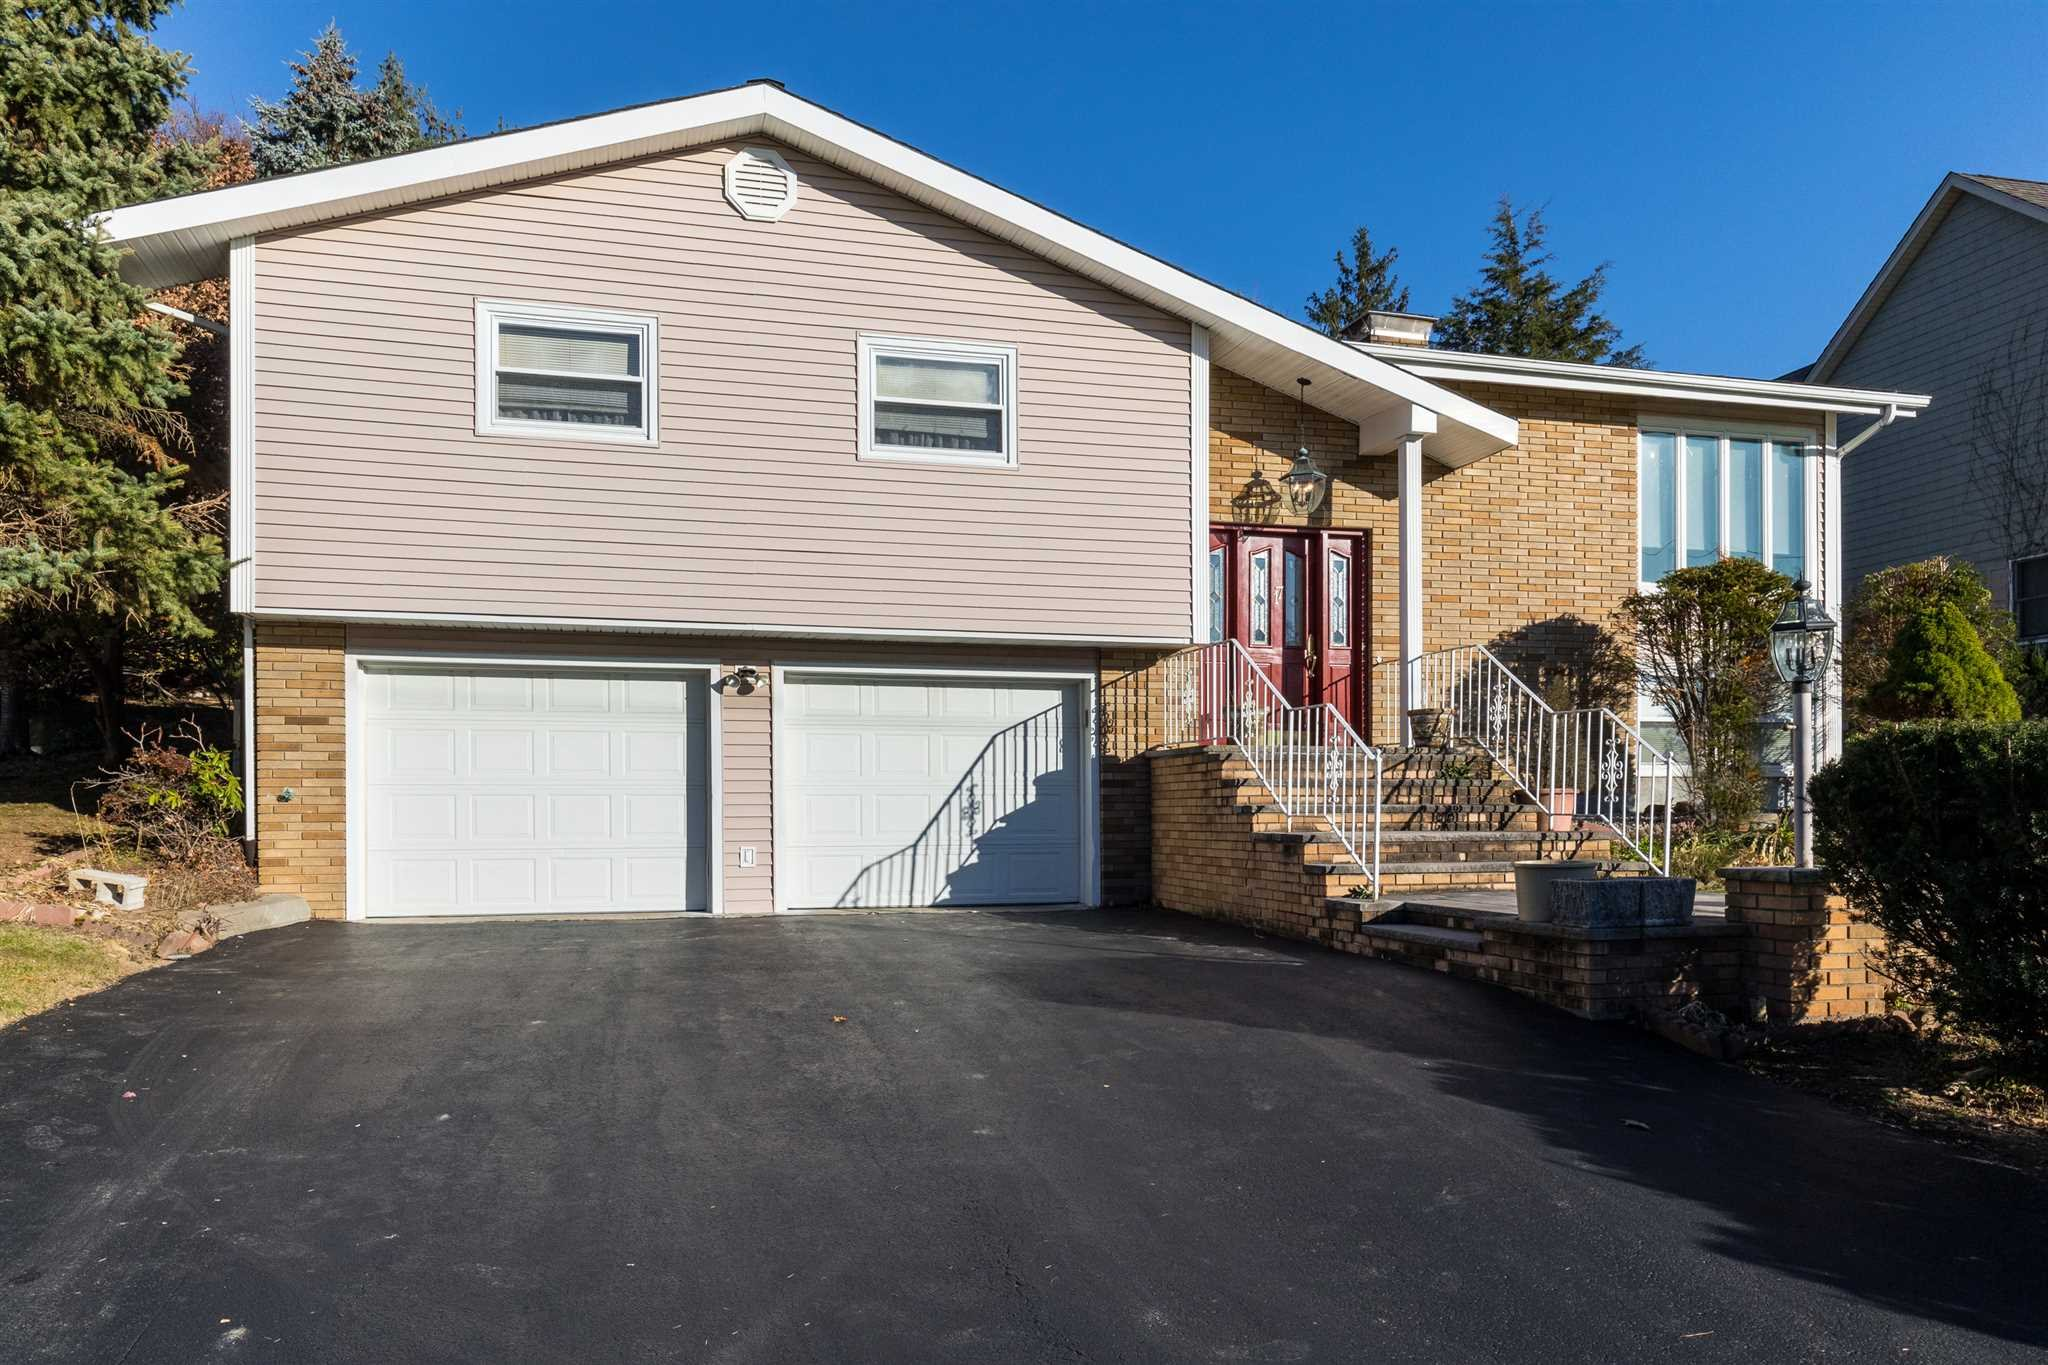 Single Family Home for Sale at 17 WILLIAM Street 17 WILLIAM Street Fishkill, New York 12524 United States